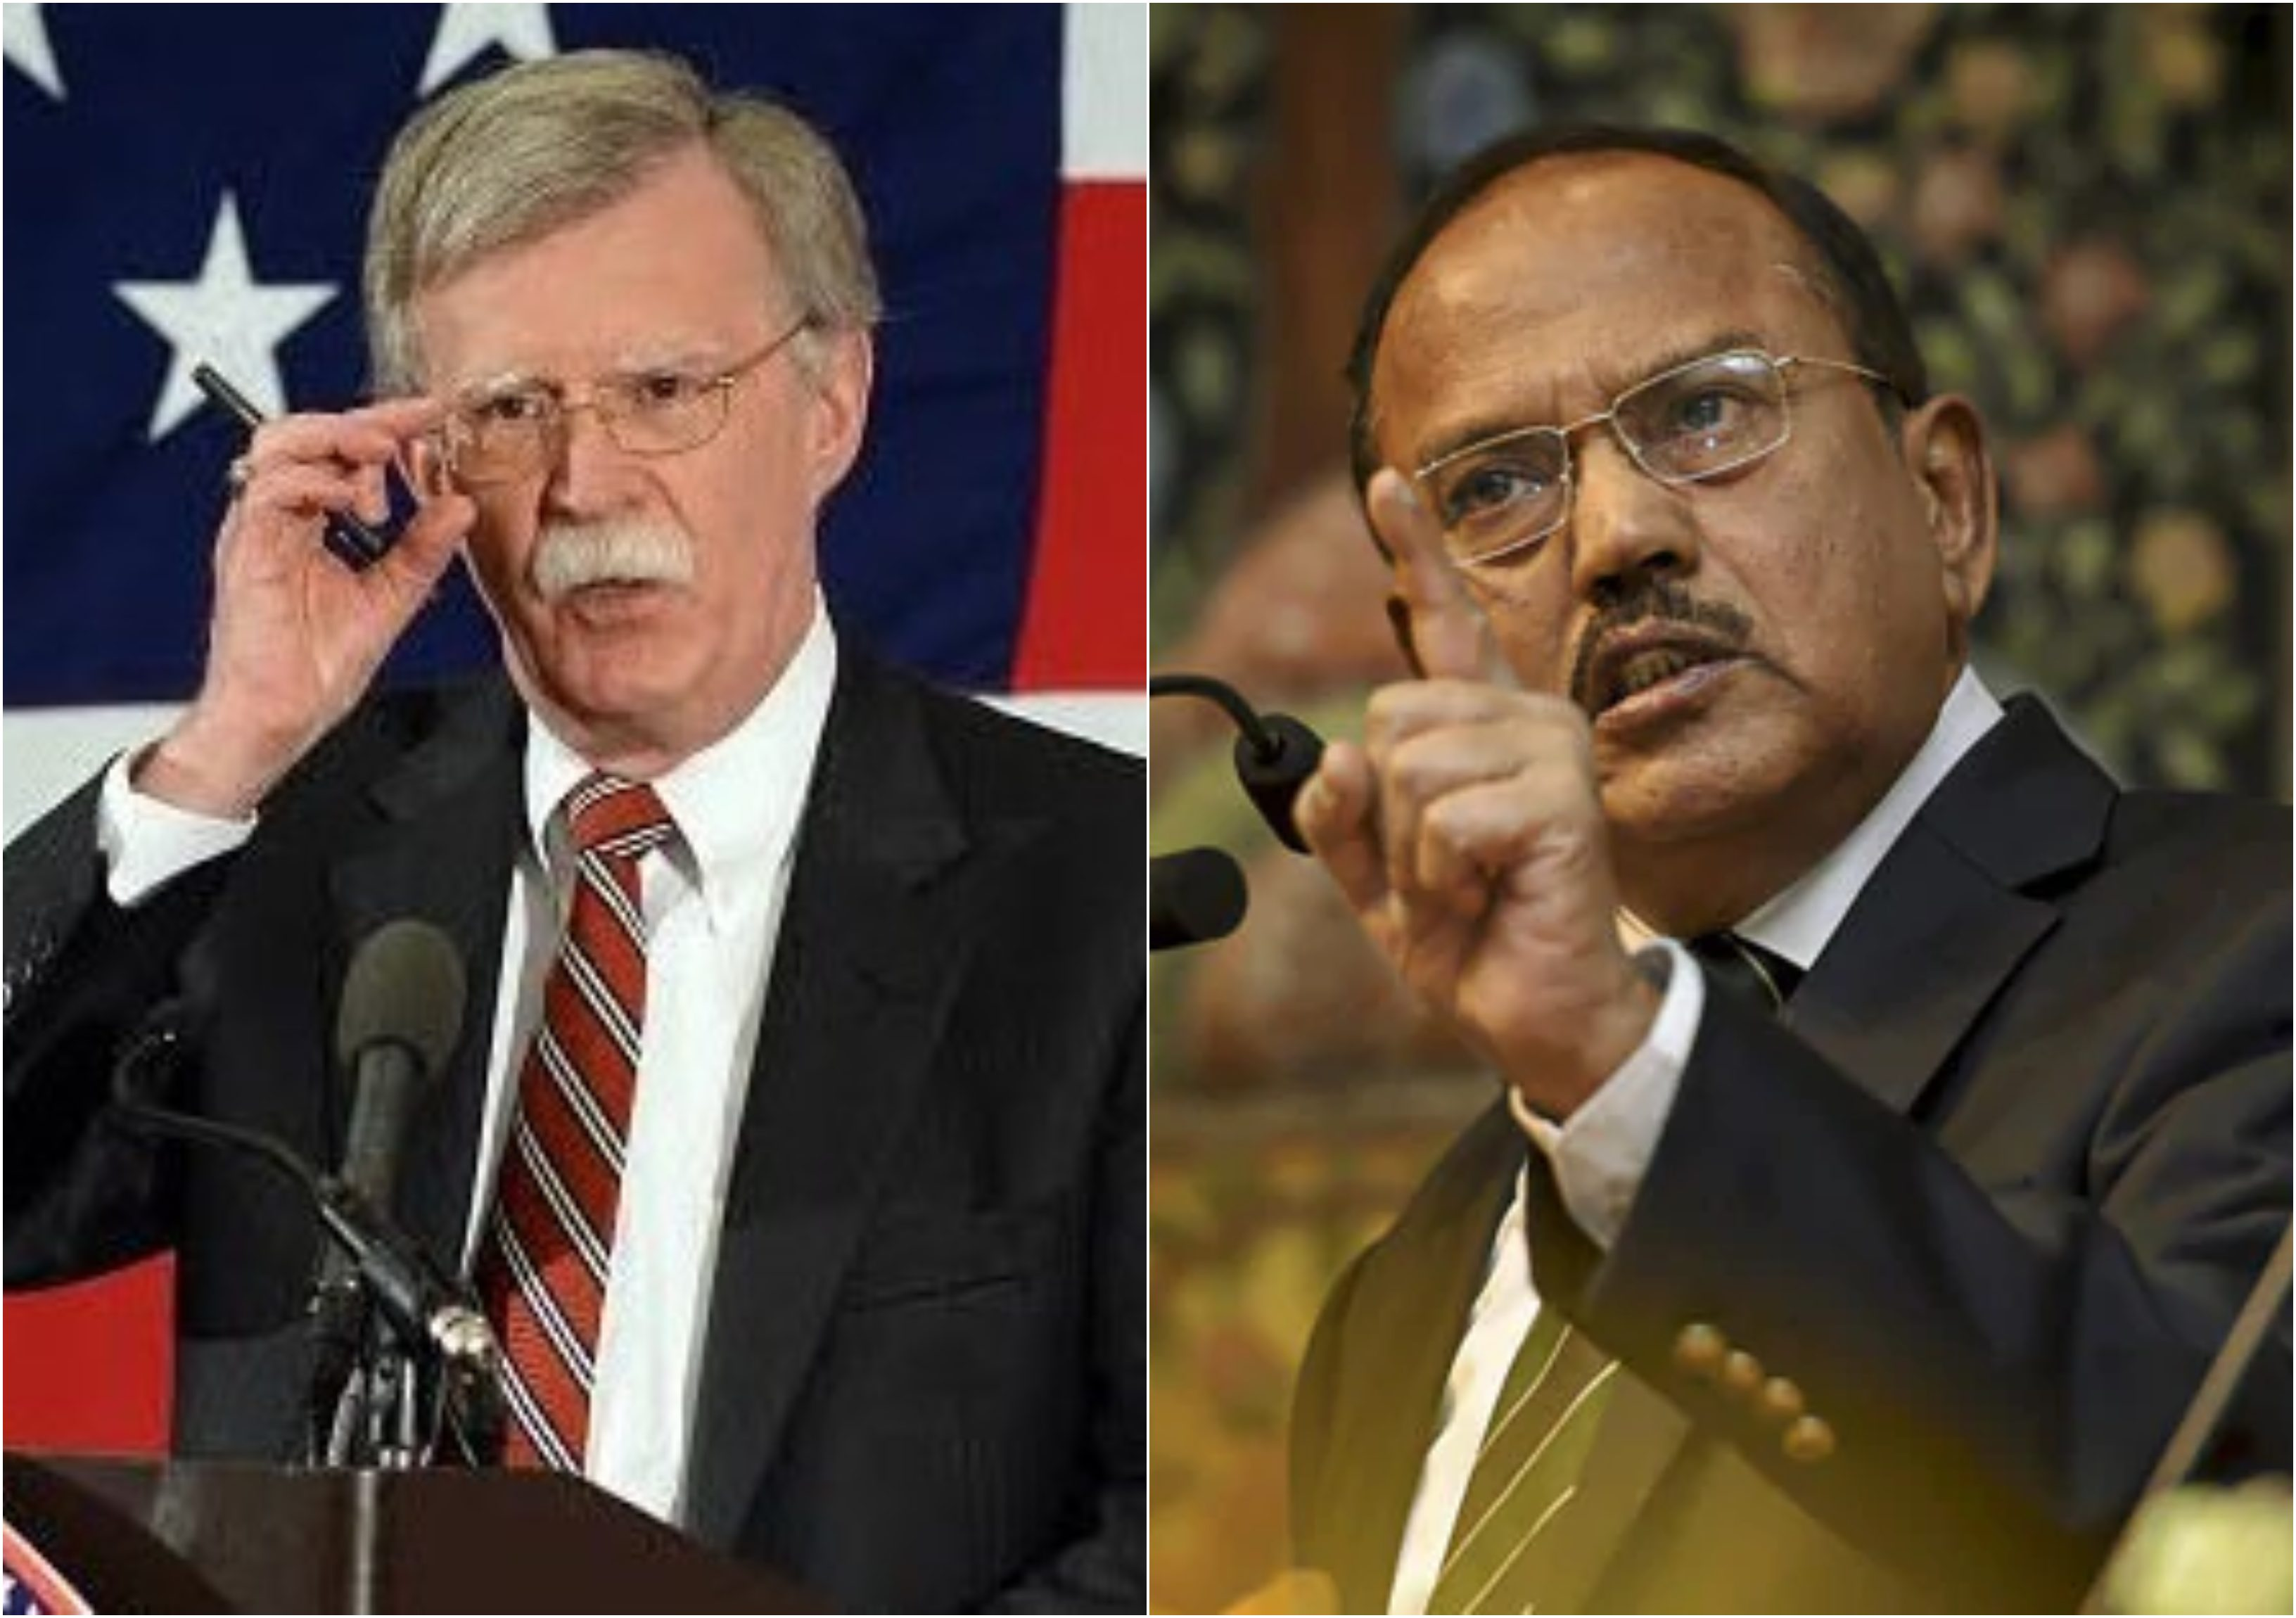 US, National Security Adviser, John Bolton, Ajit Doval, Puwama, Attack, Terrorist, Pakistan, Jammu and Kashmir, NewsMobile, Mobile, News, India